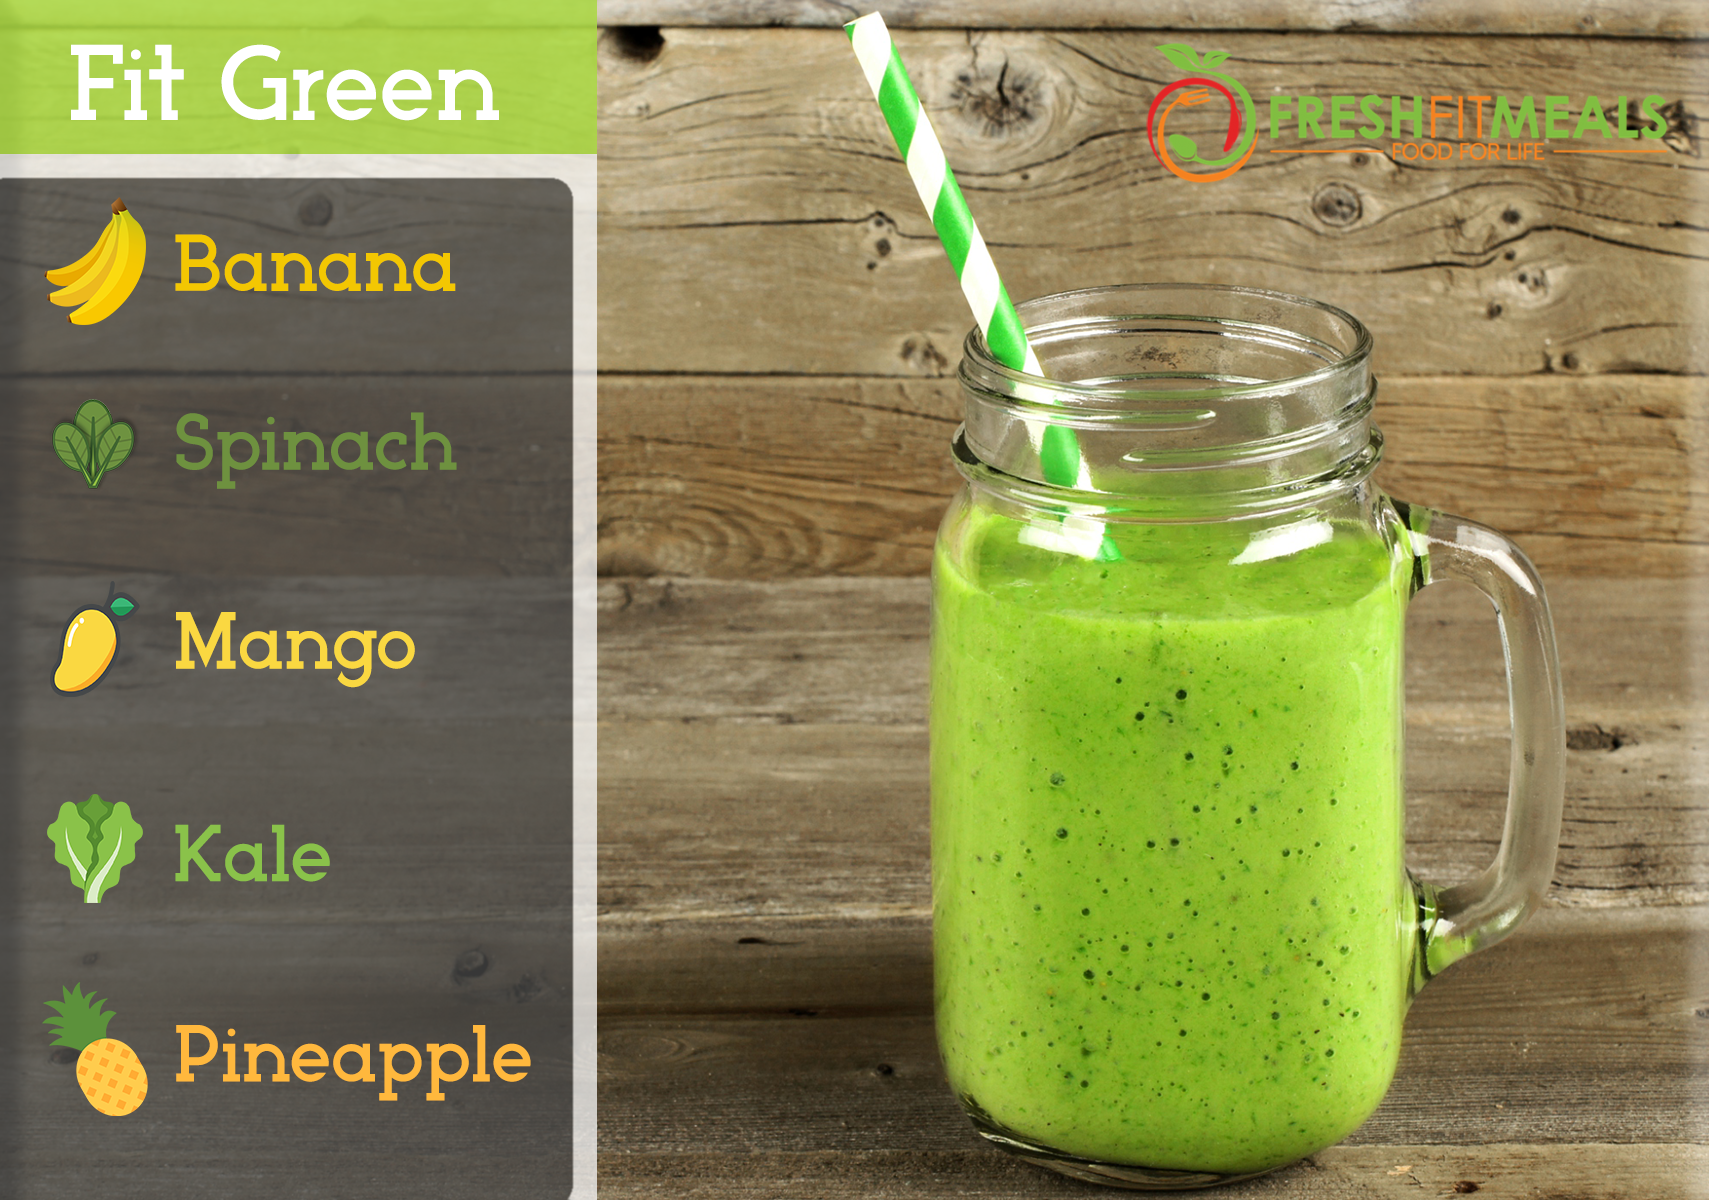 Spinach, kale, mango, banana, and pineapple.